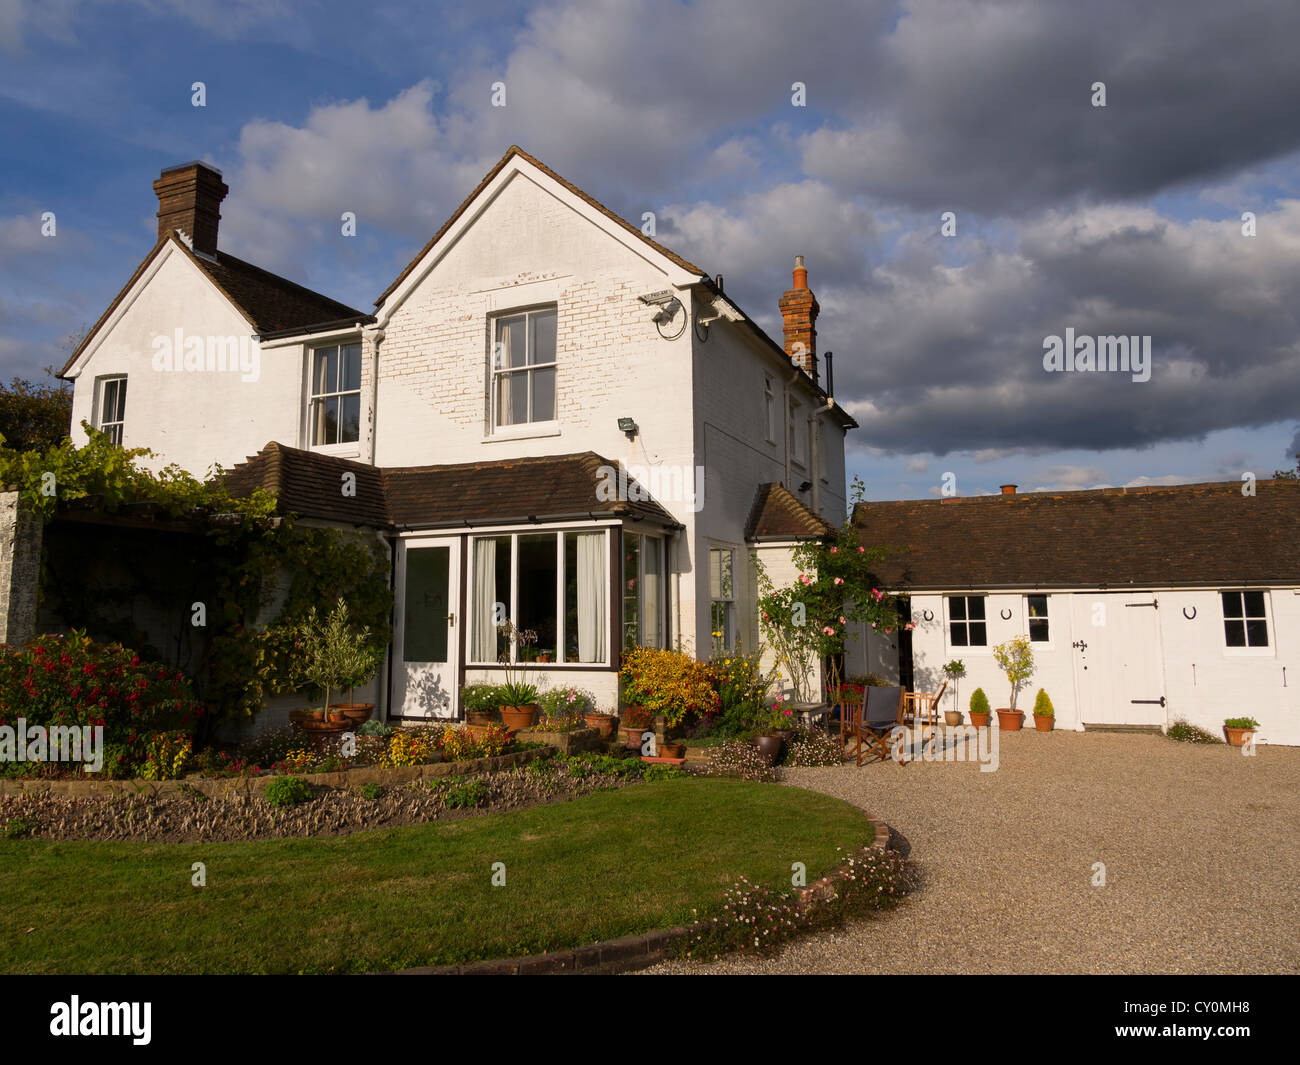 Victorian Country House In Sussex A Typical White Painted Brick With Historic Outbuildings And